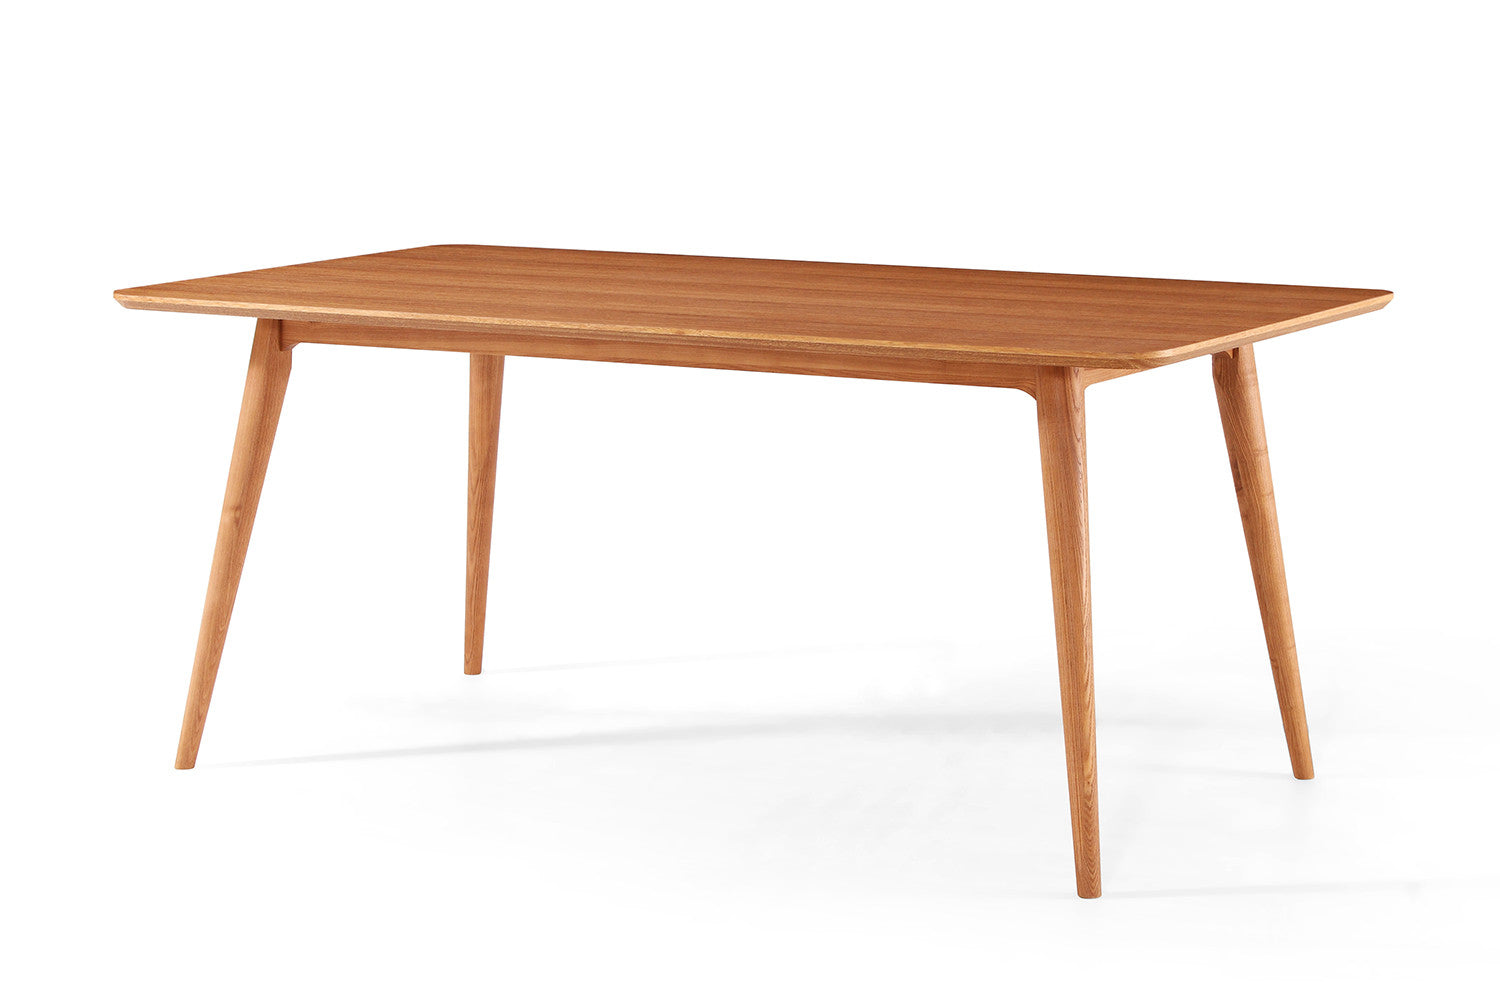 Table de salle manger design en bois julia dewarens for Table salle a manger solde